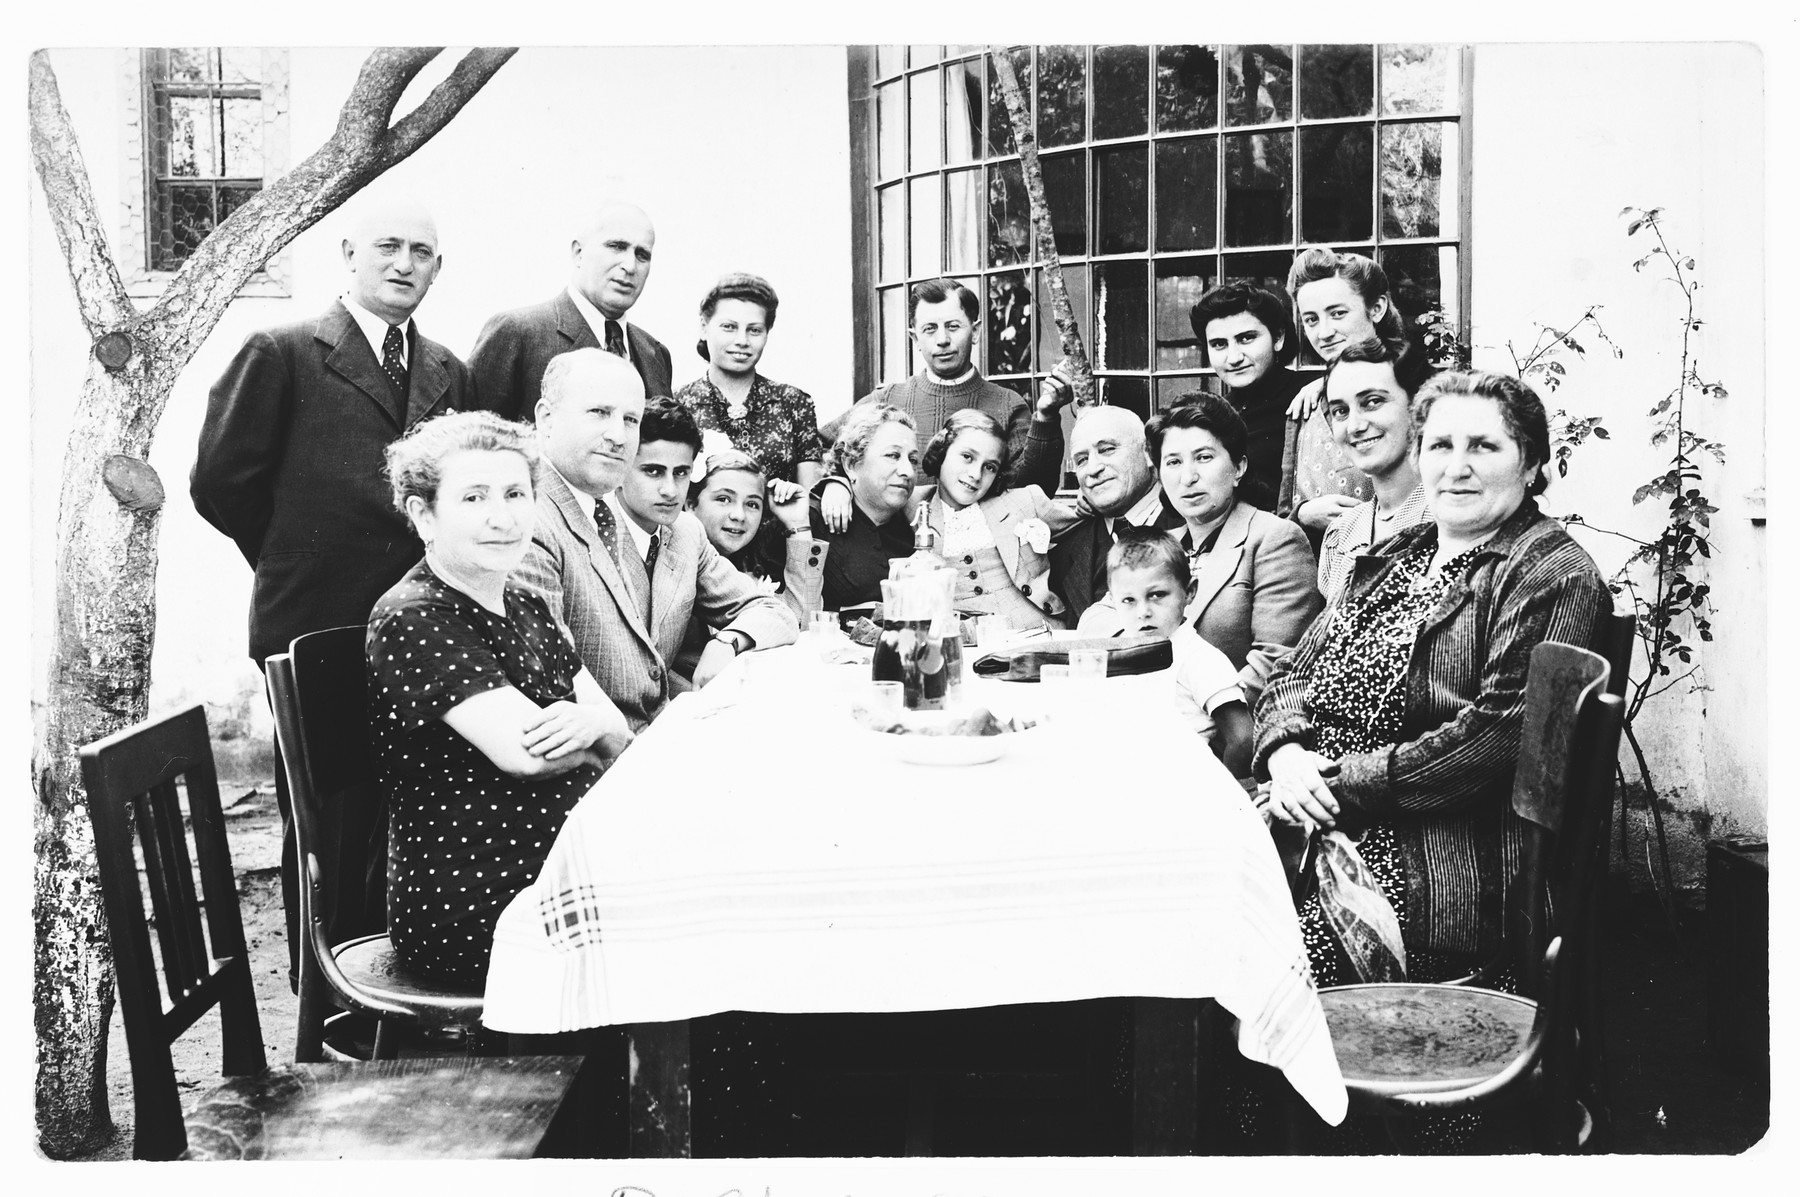 The extended Krasso and Spitzer families pose outside around a table at a family gathering shortly before the start of the war.  Among those pictured are Miriam Spitzer (fourth from the left), her mother Ilonka Spitzer (second from the right) and sister Leah (center next to her grandparents).